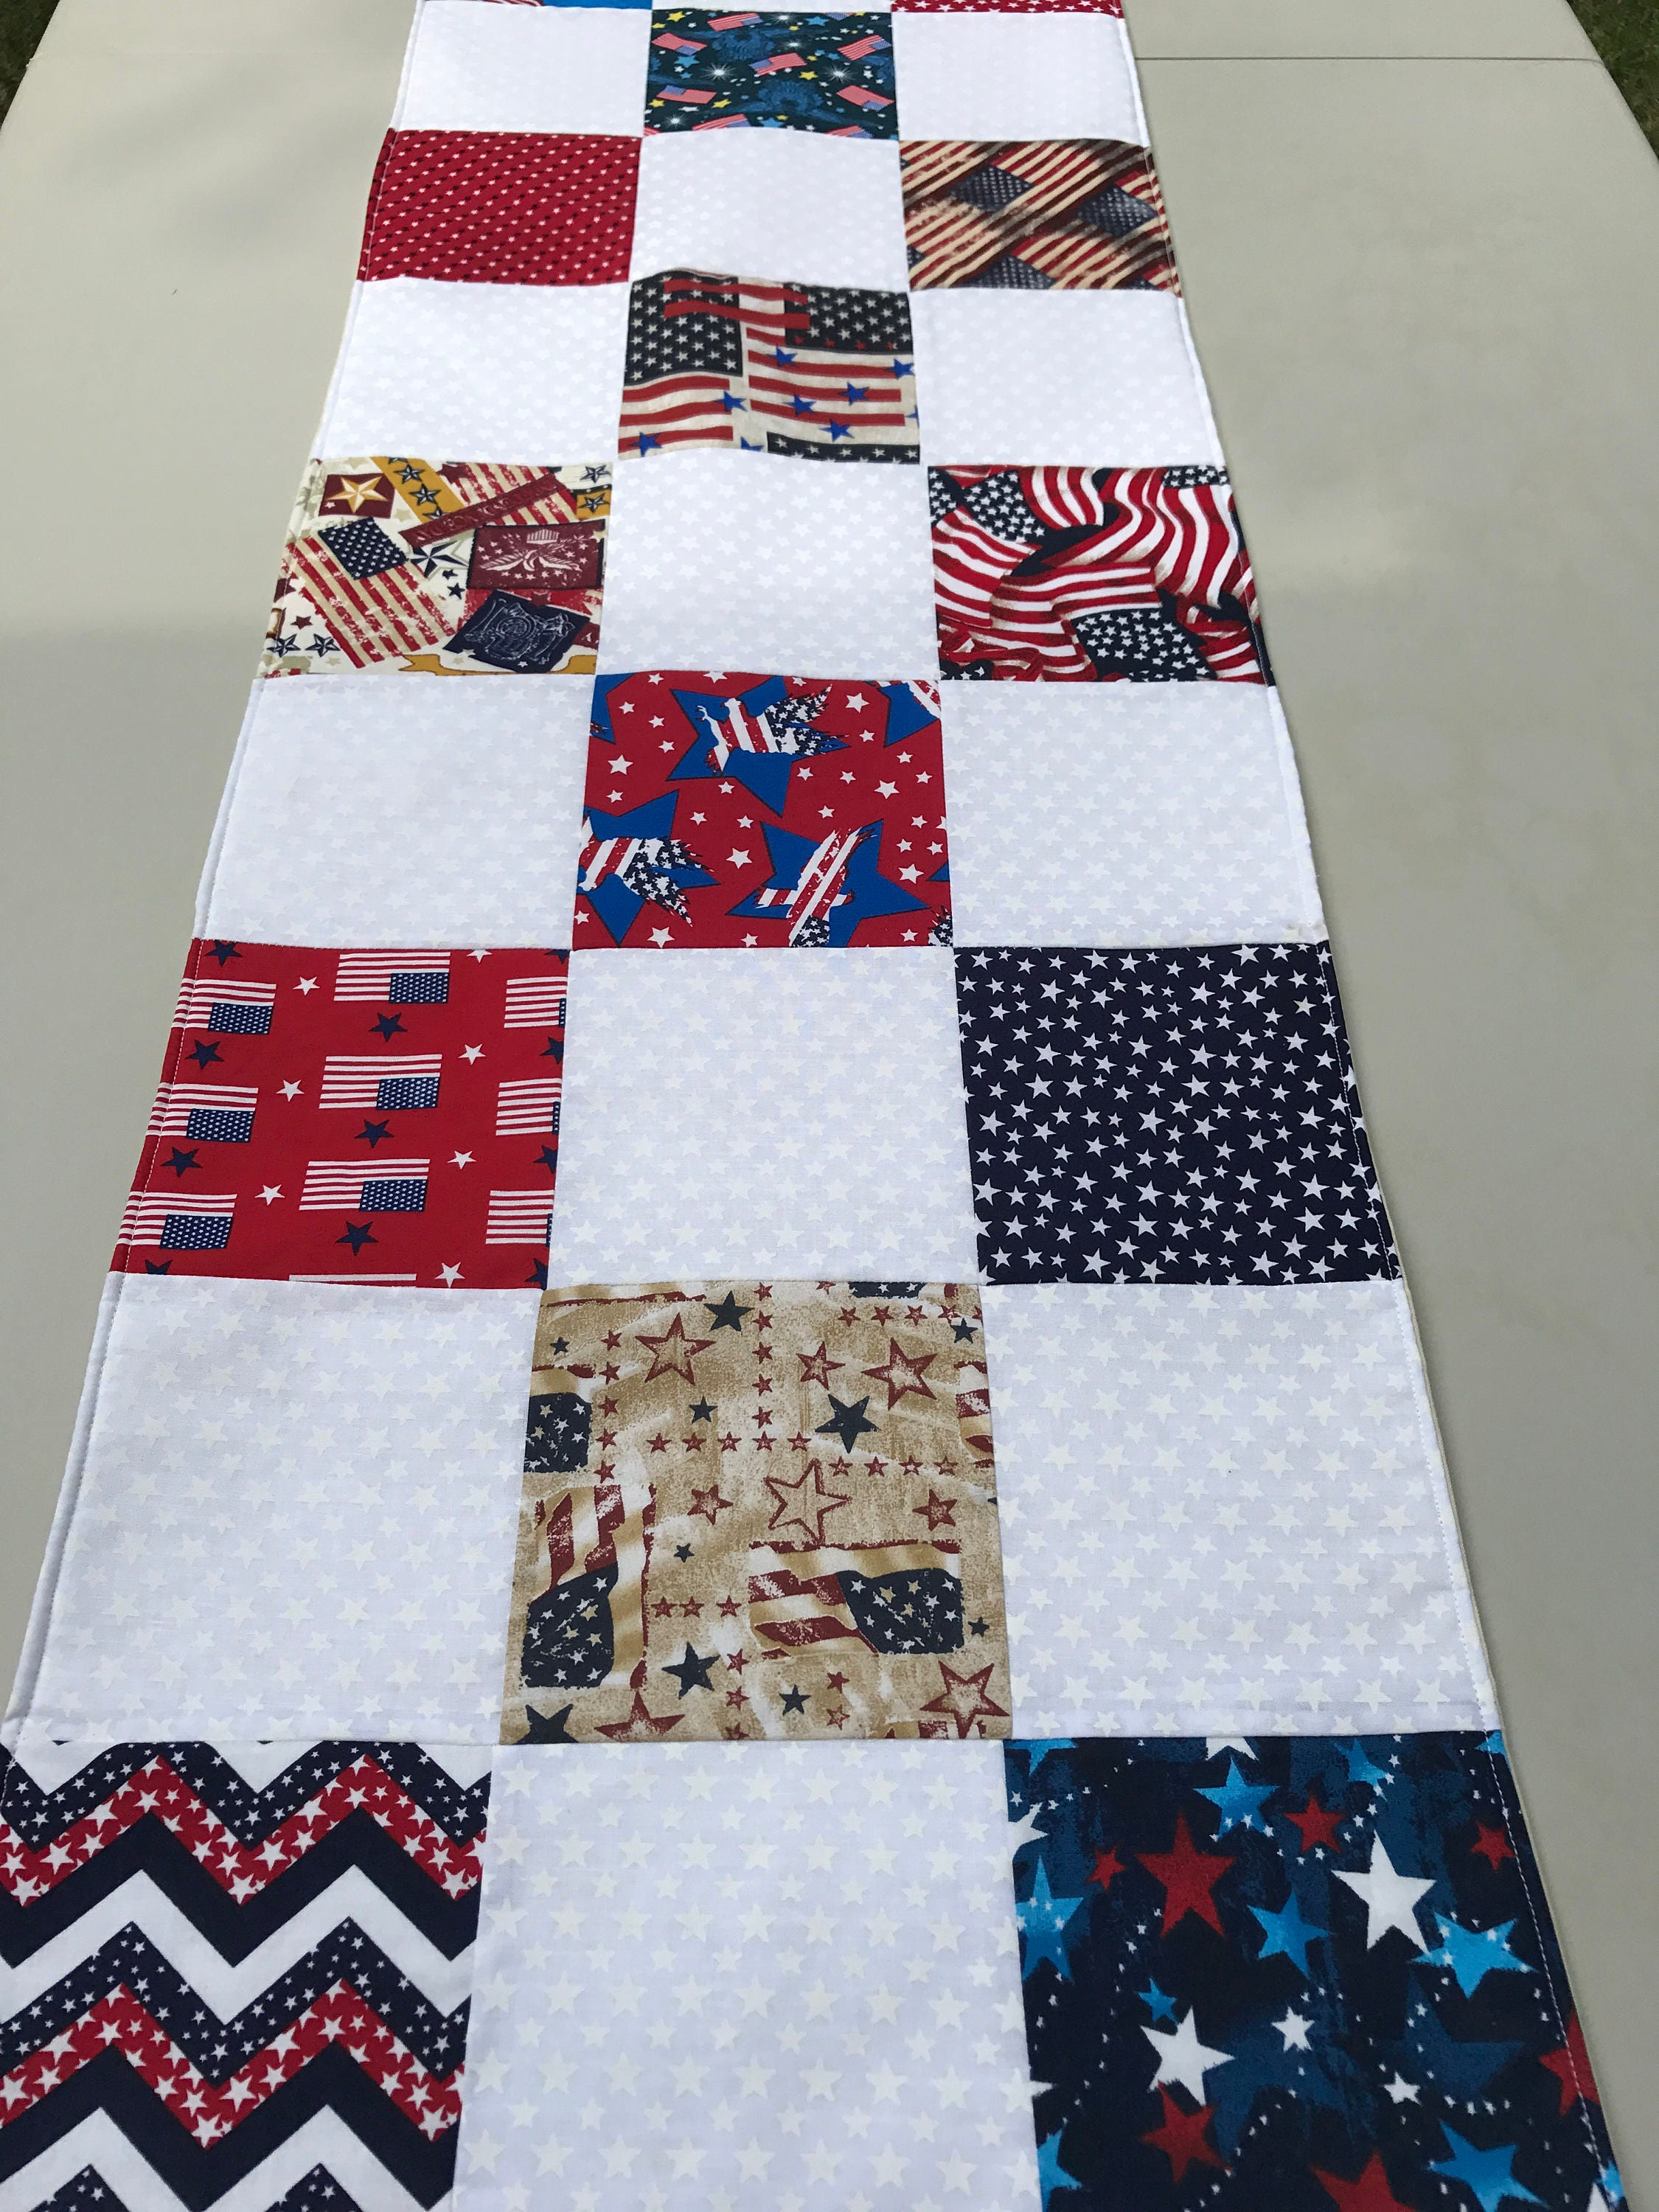 Marvelous Patriotic Table Runner Patchwork Table Runner Red White Home Interior And Landscaping Eliaenasavecom